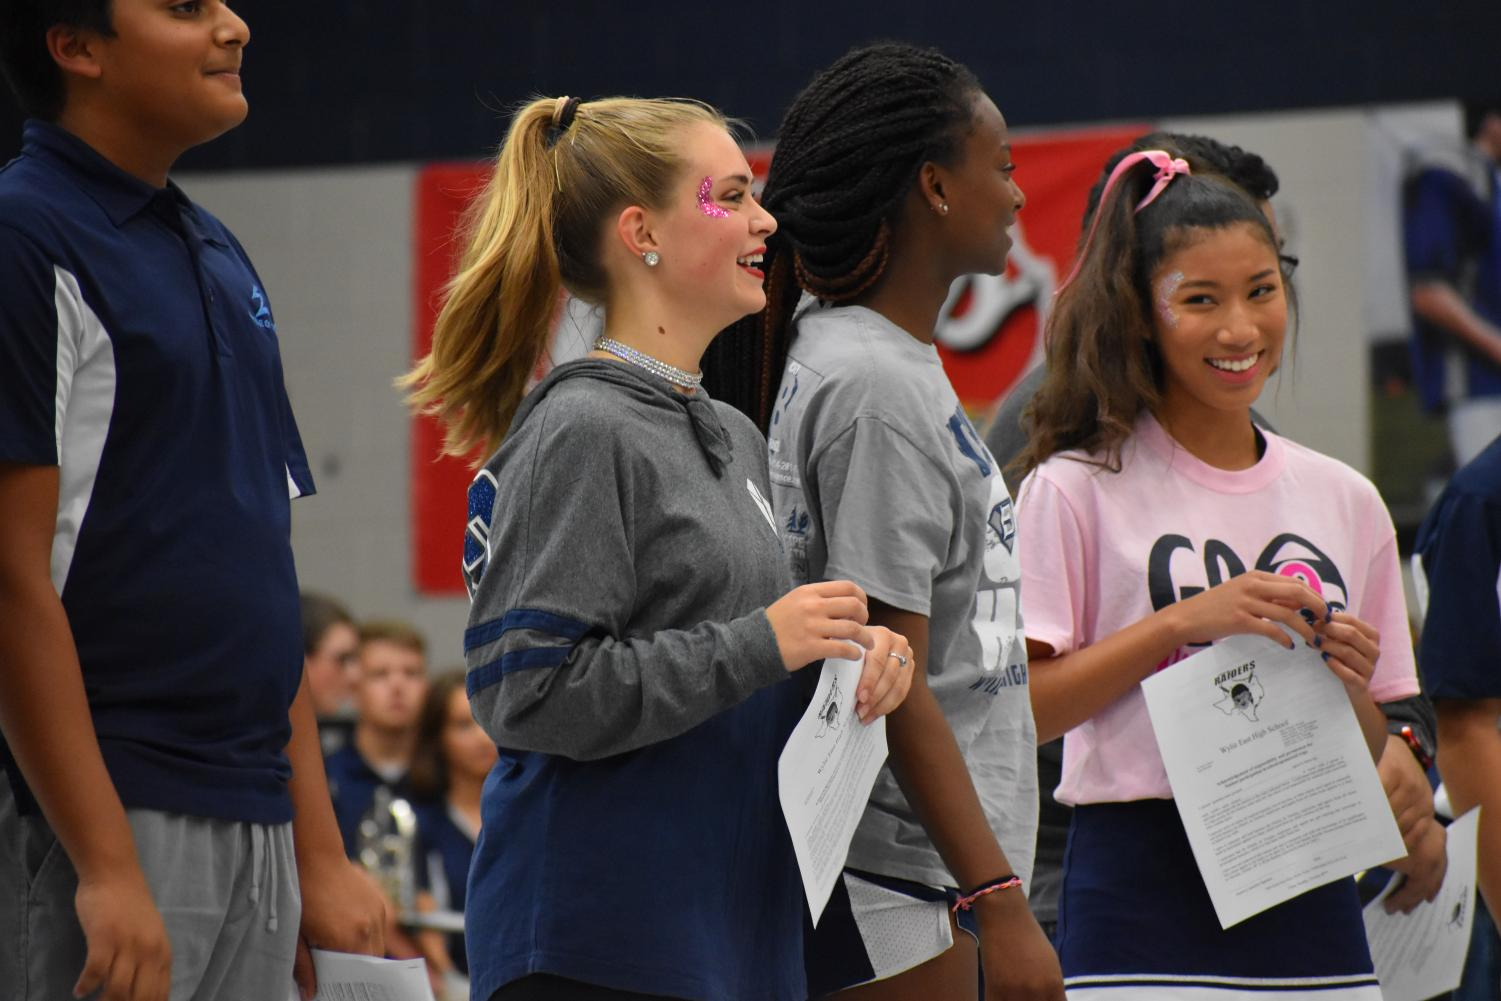 Crownworthy \\ Basking in the moment, junior Audrey Wentz finds out that her peers nominated her for the homecoming court. All nominees were announced during the Pink Out pep rally Oct. 4.